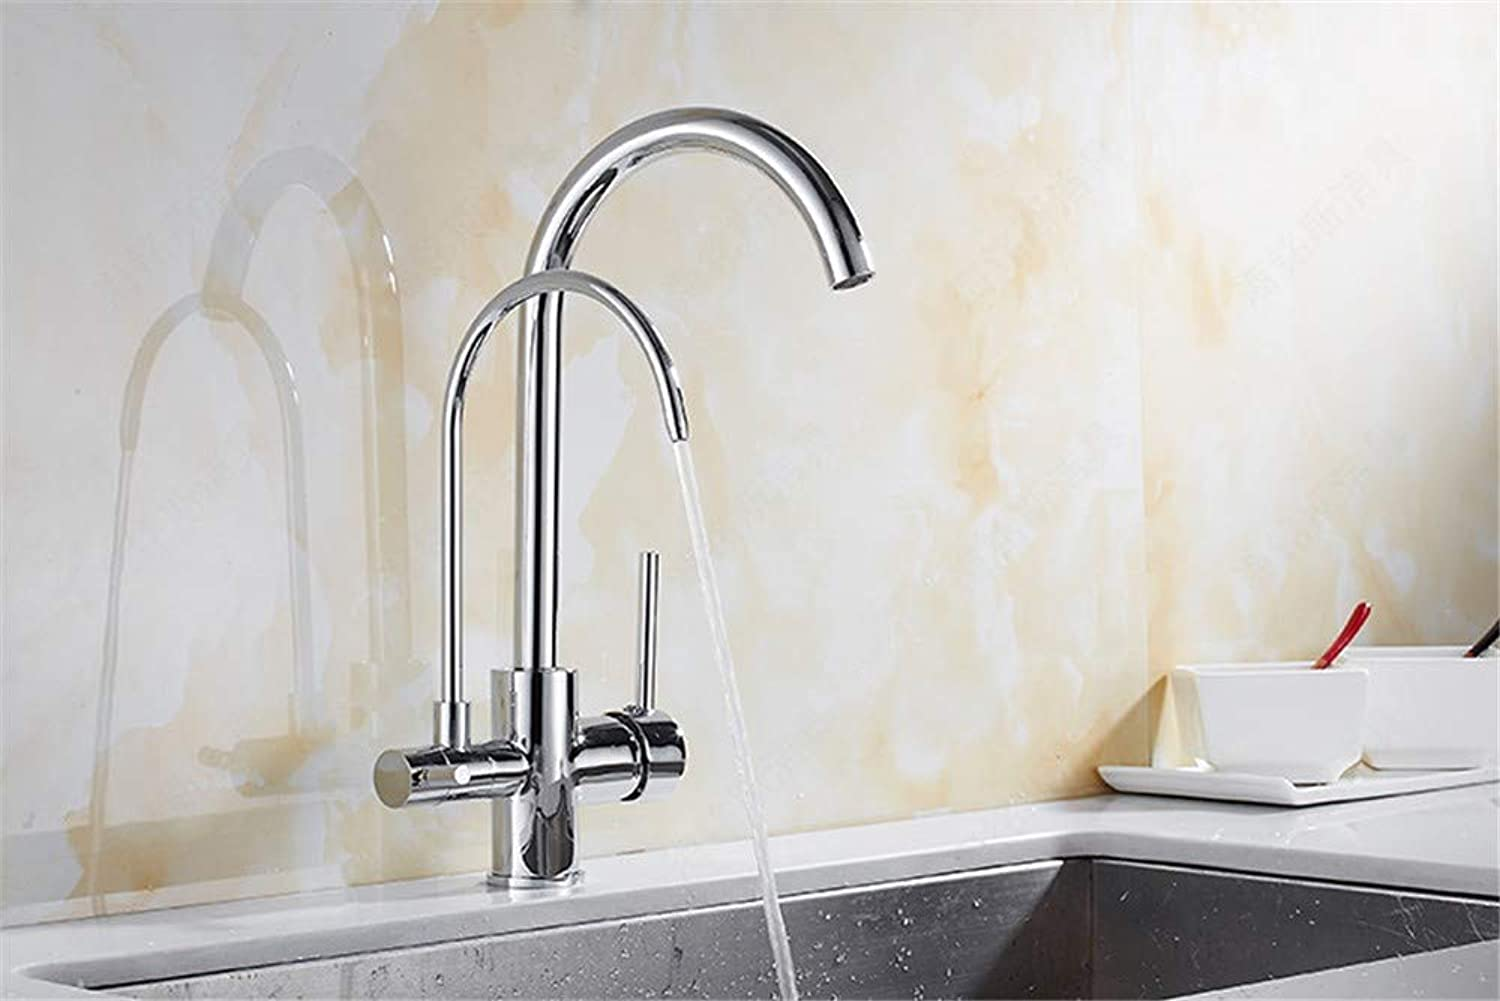 Sink Tap 3-in-1 Electroplating Hot and Cold Kitchen Water Purifier Faucet